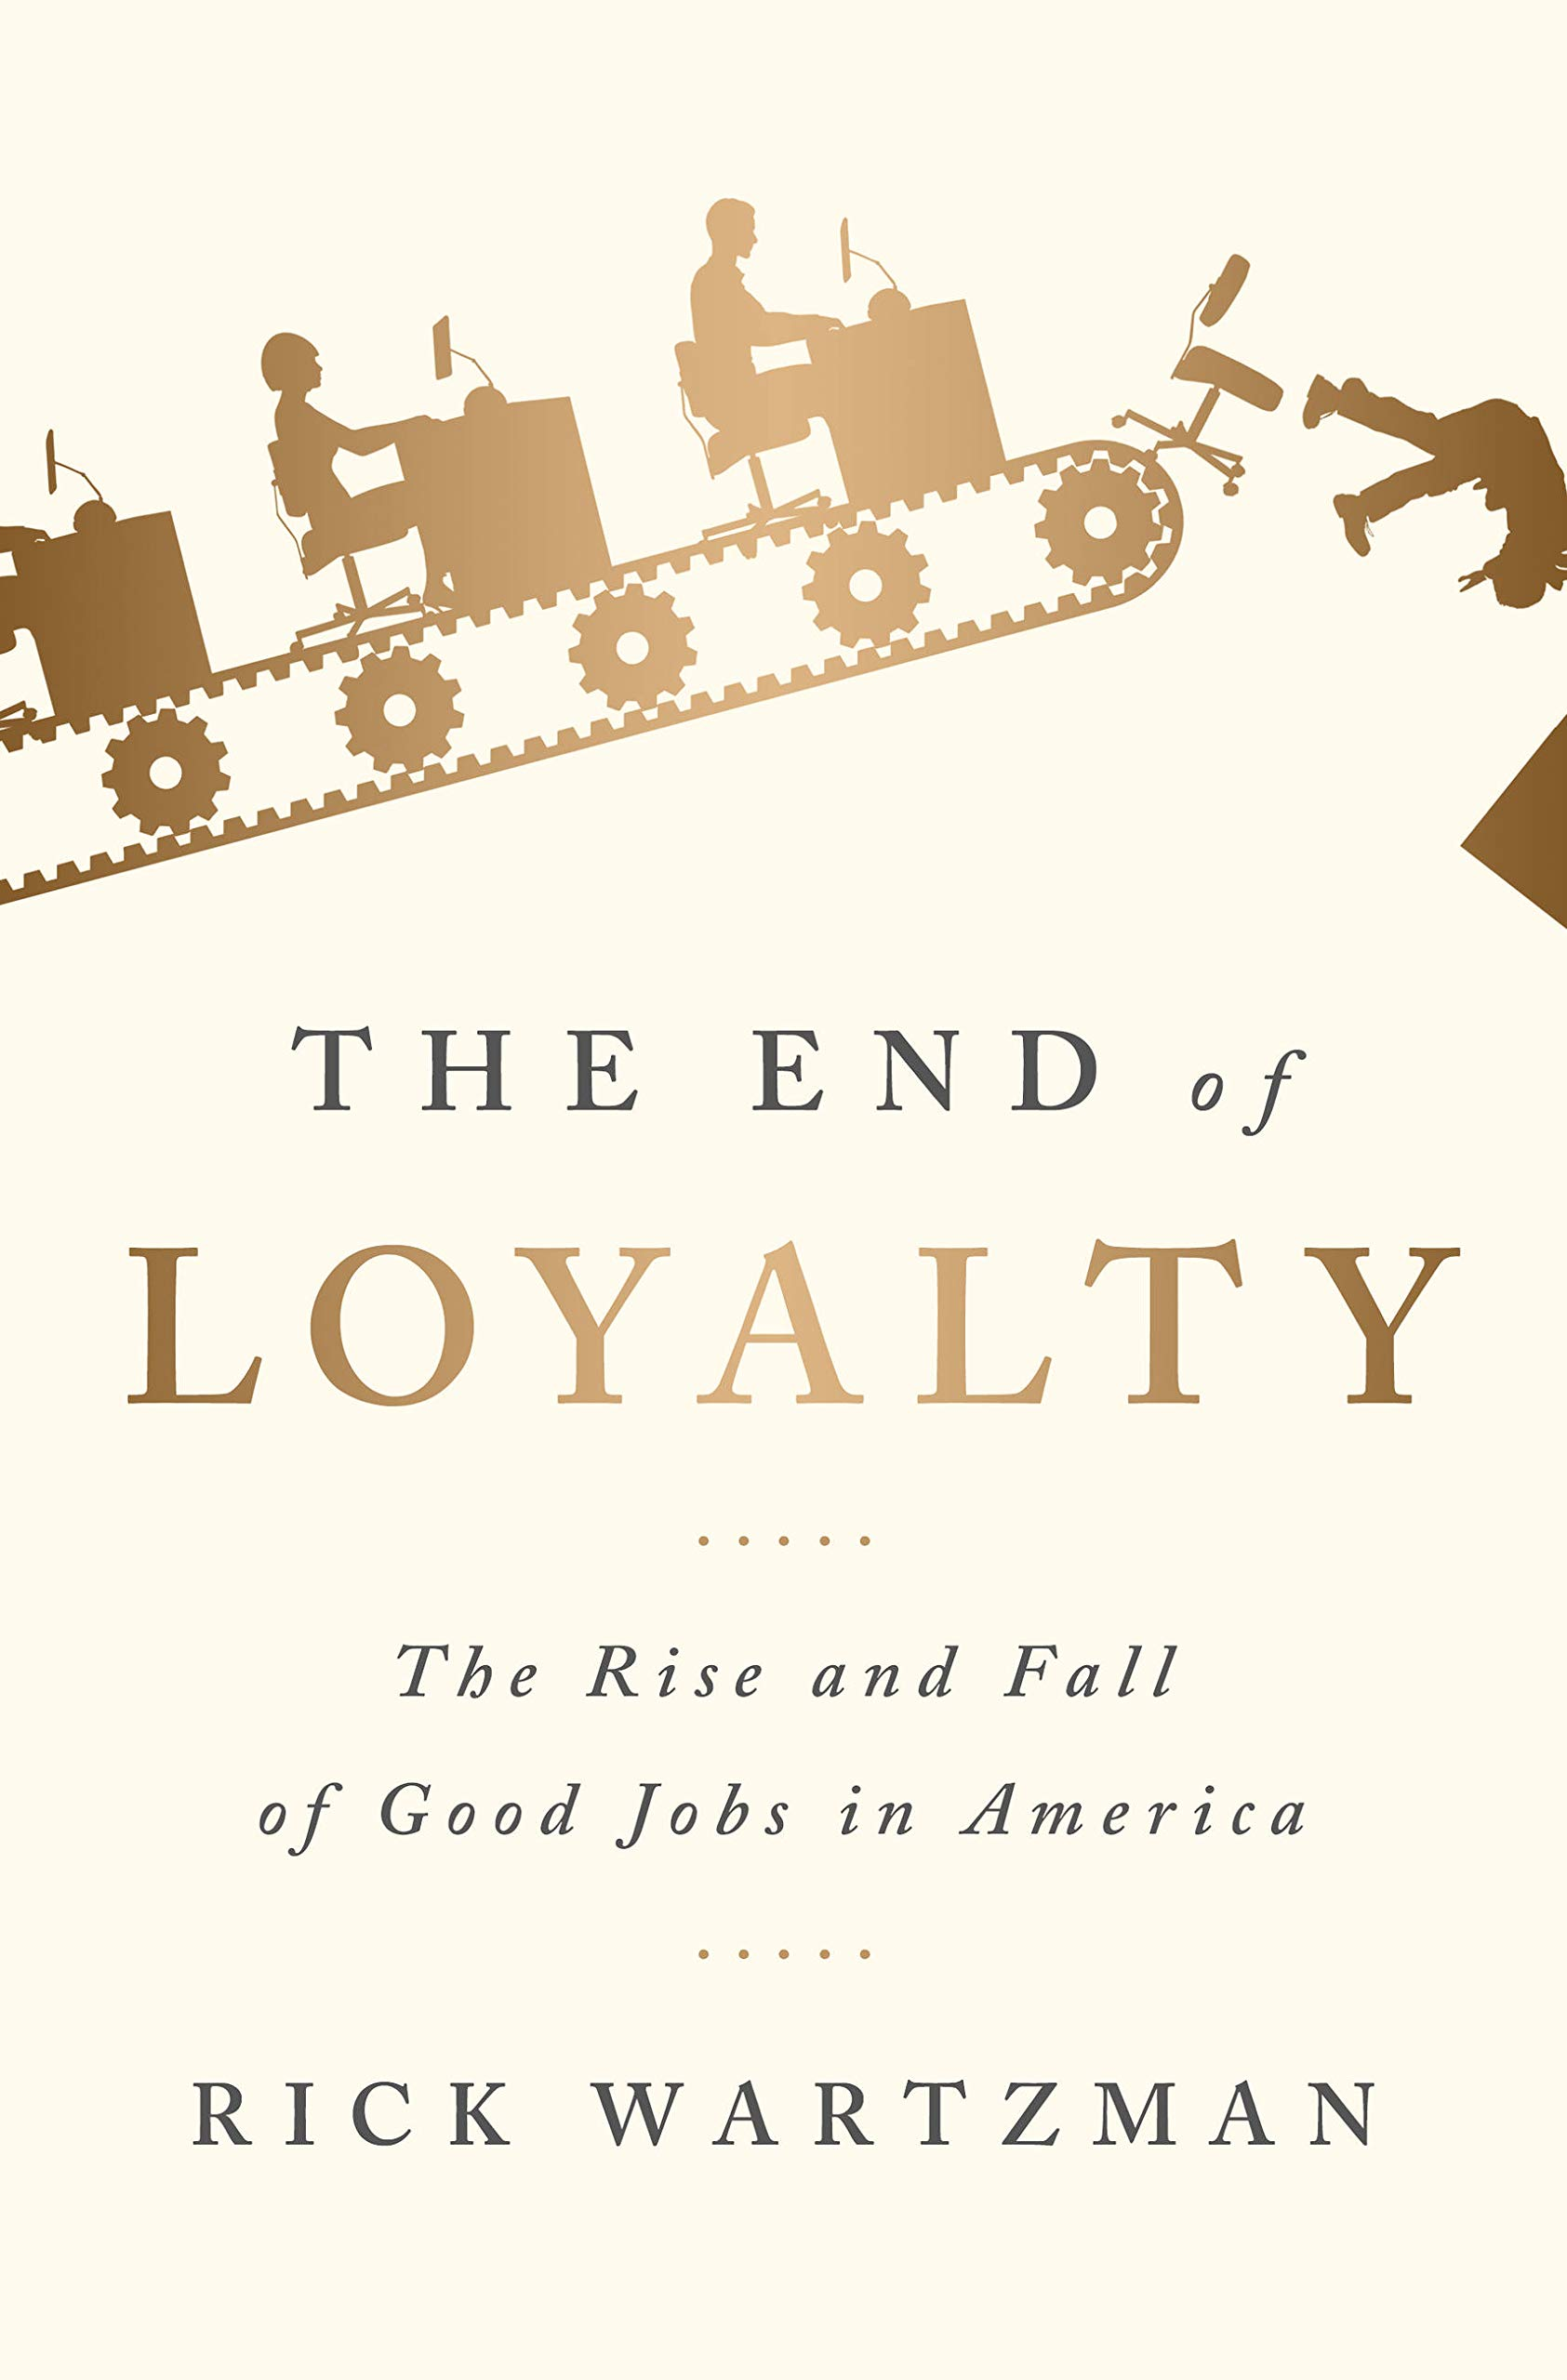 The End of Loyalty: The Rise and Fall of Good Jobs in America